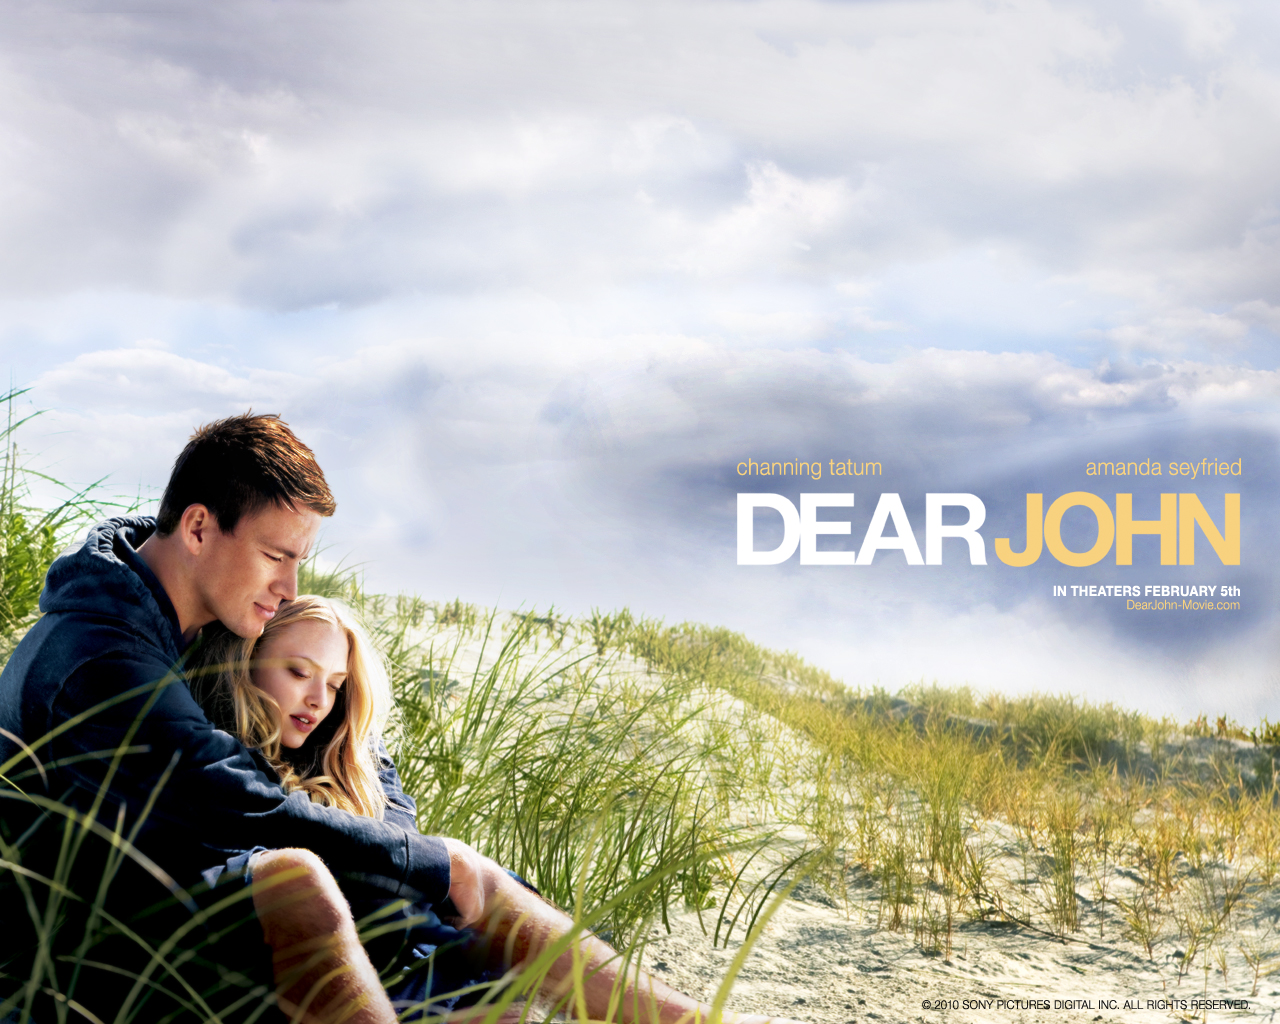 book report on dear john I'm requesting a spoiler, please =) today was opening day of the movie dear john based on the nicholas sparks book i want to know if the end of the movie is the same as the end of the book before i decide whether to see the movie.